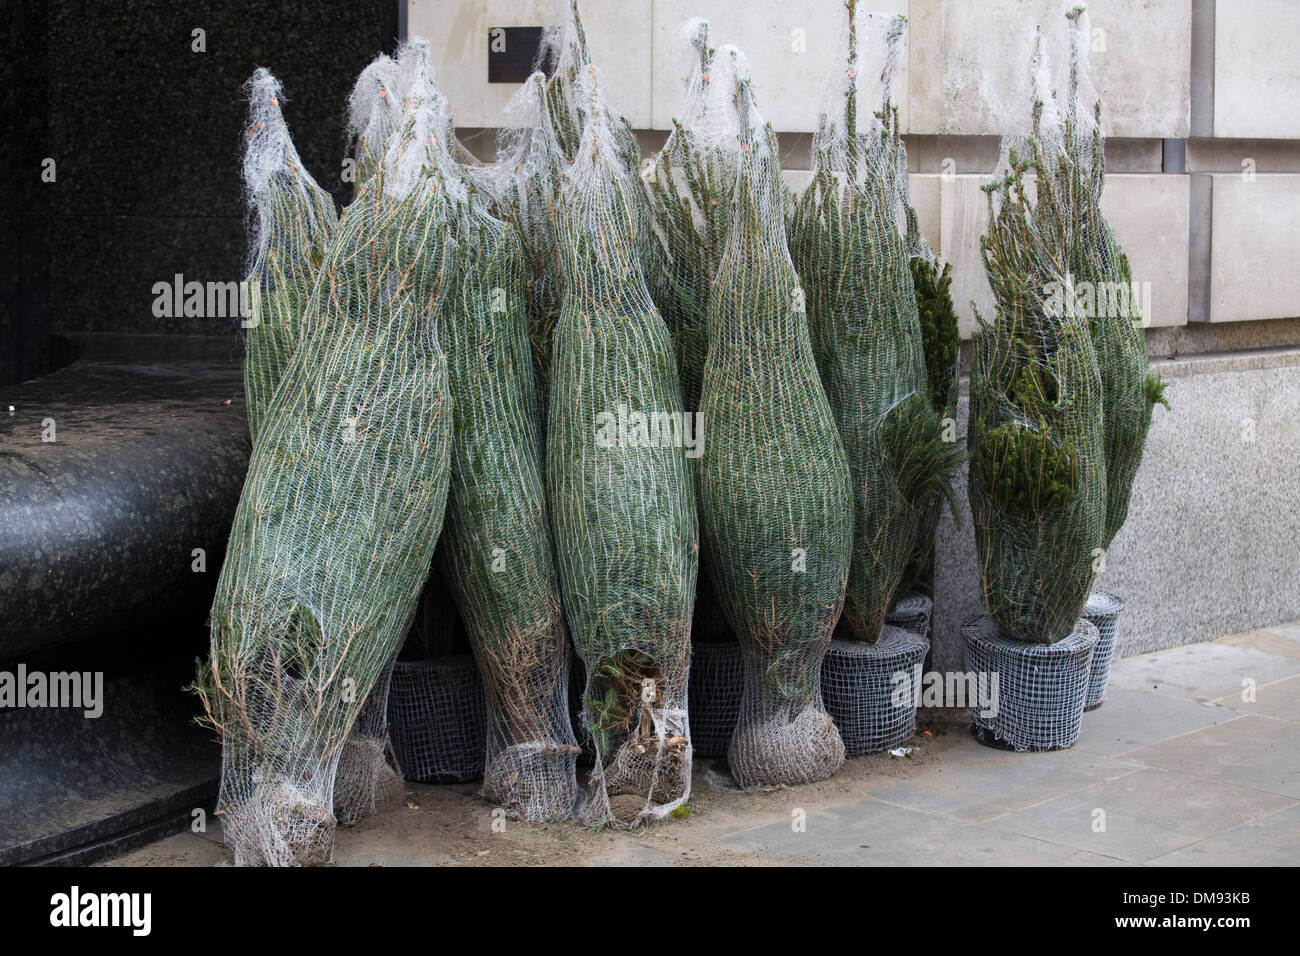 Christmas Trees In Netting On Sale On The Streets Of London England